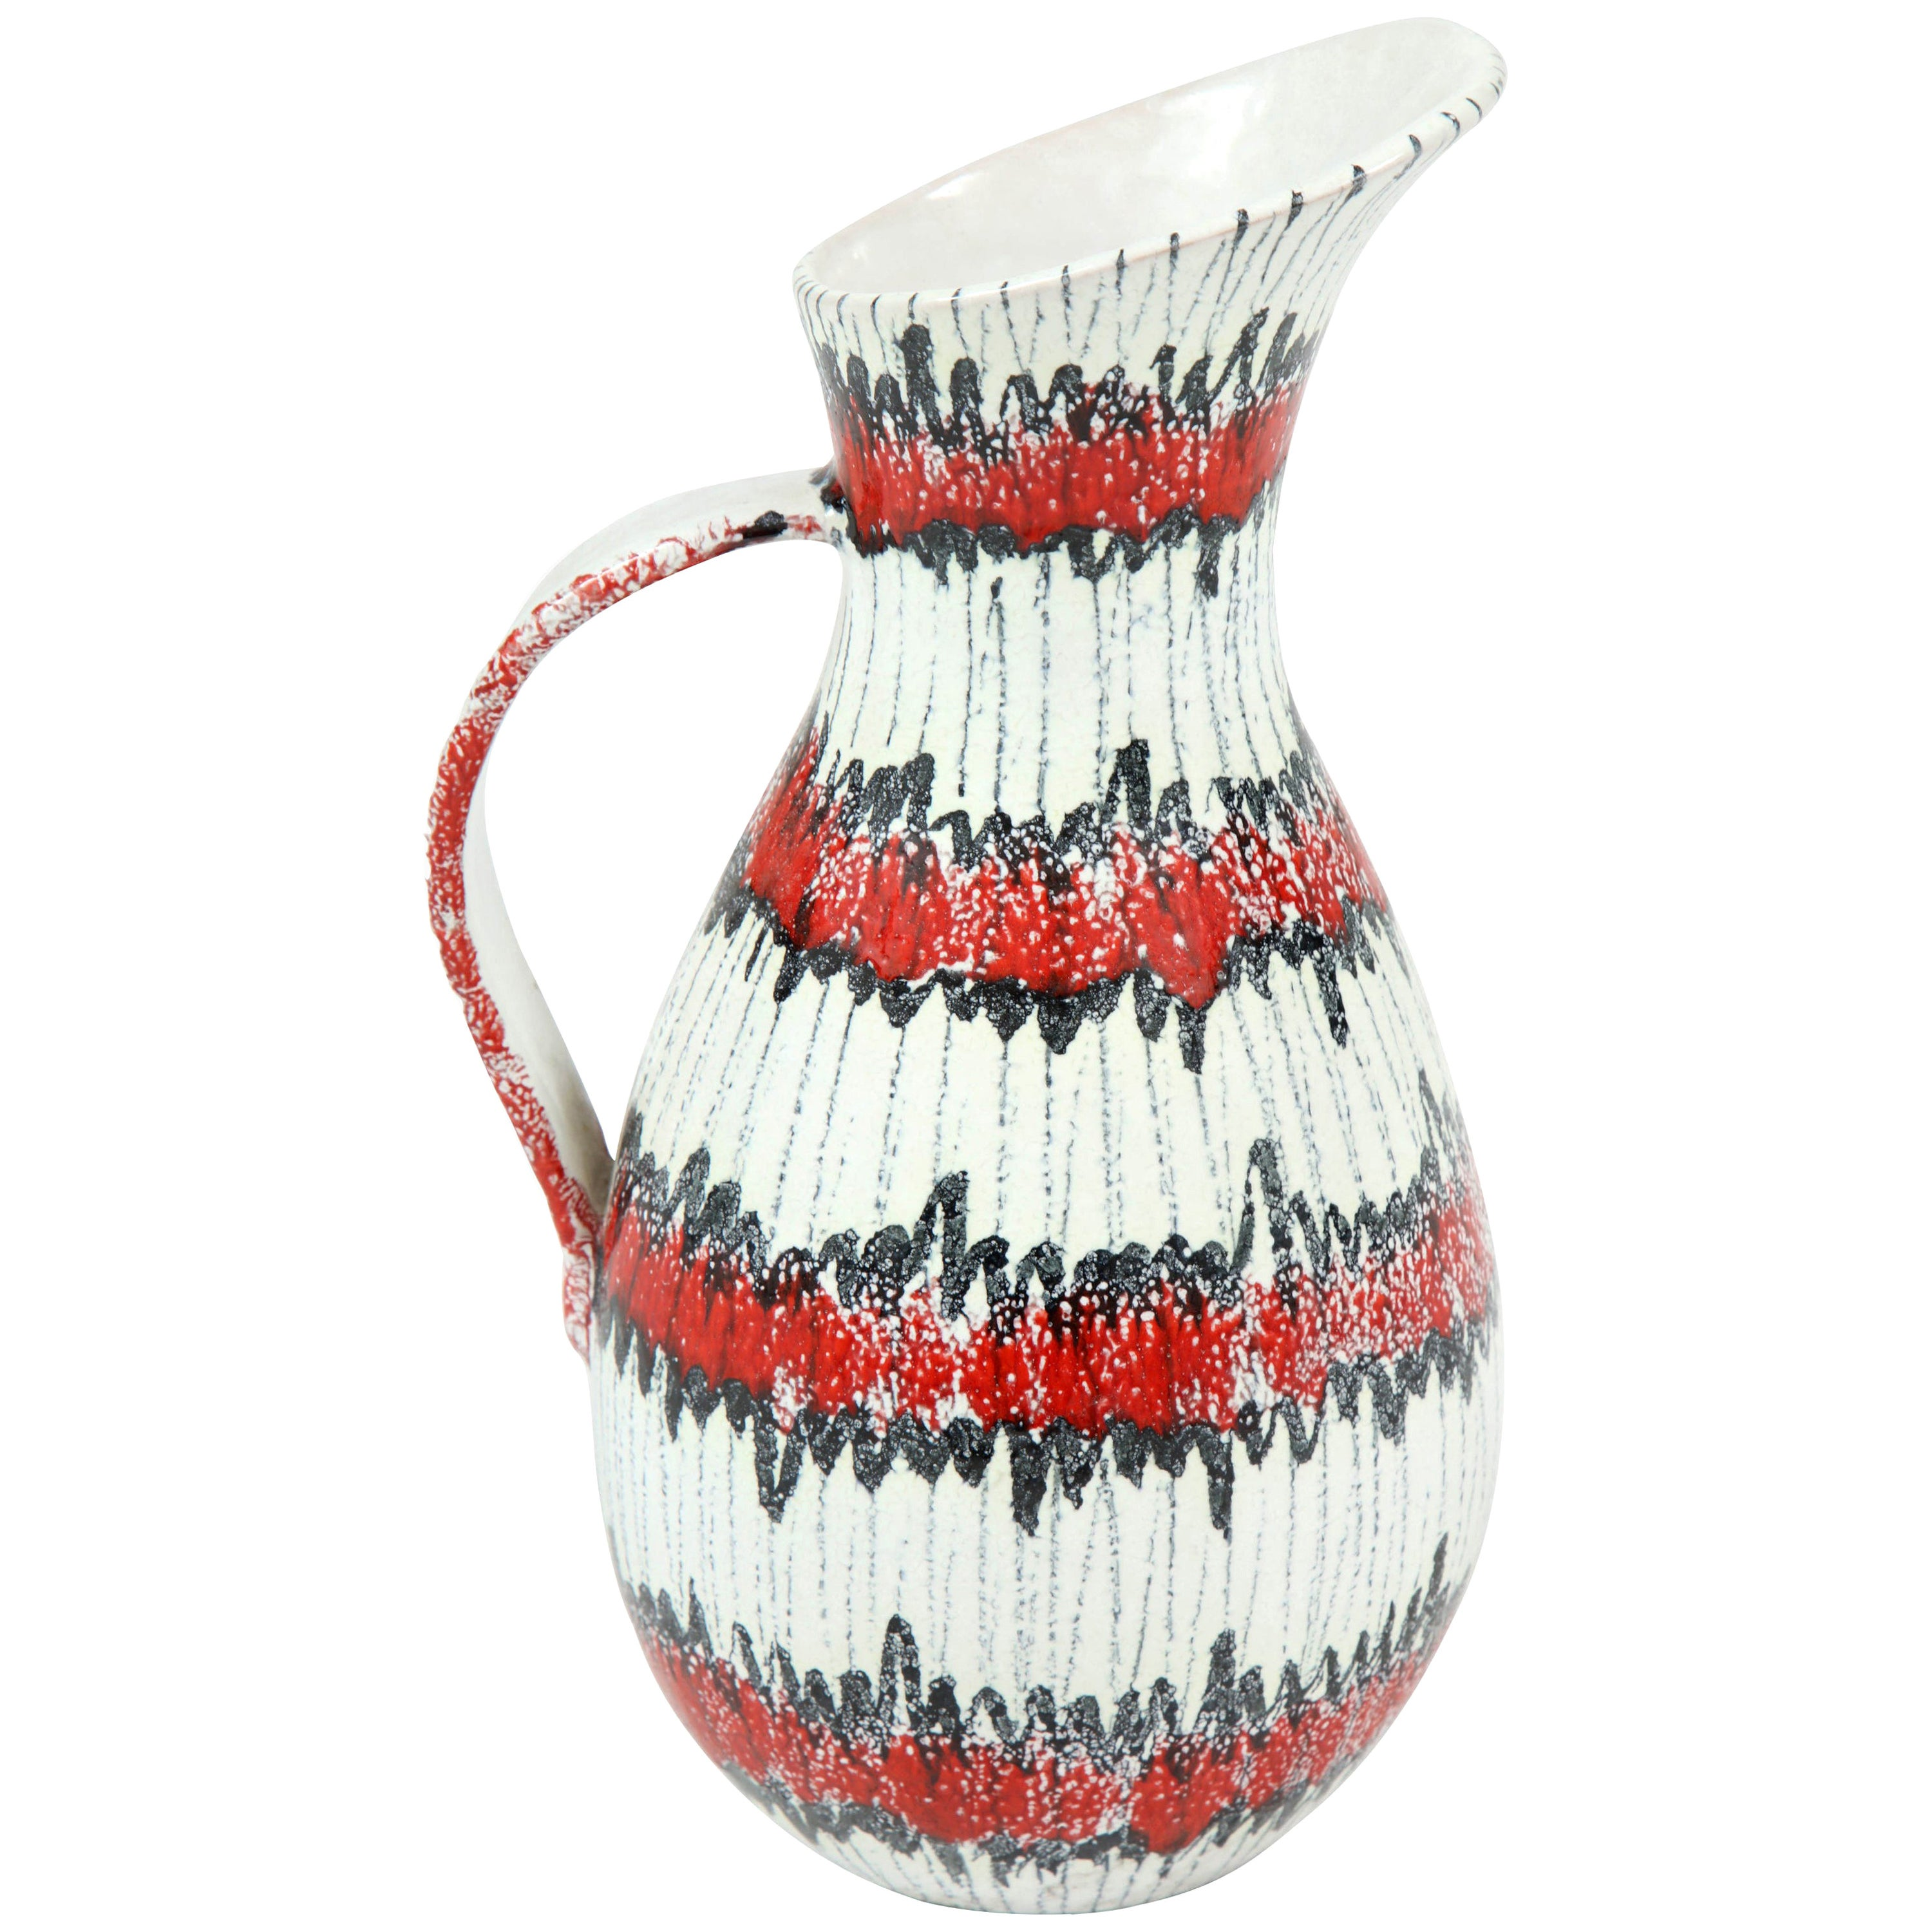 Ceramic Pitcher, Italy, Midcentury, Red, White and Black, circa 1950, Vintage